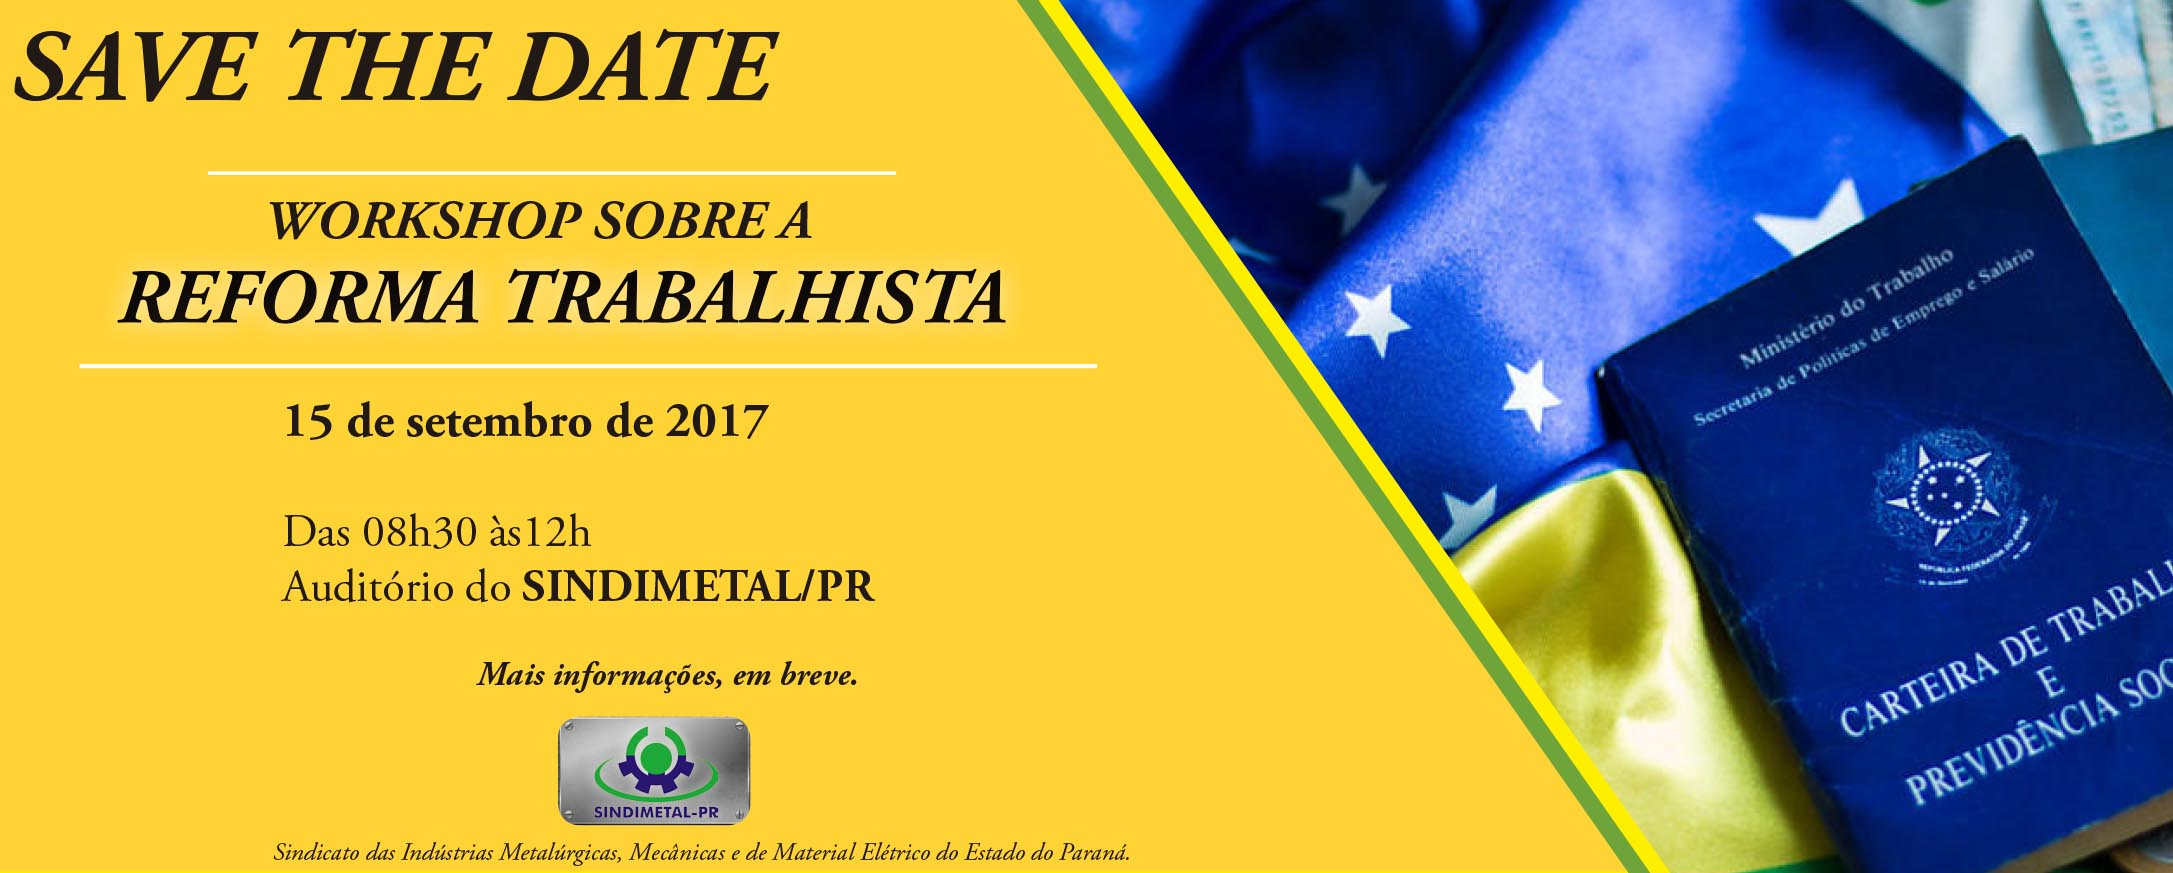 1-SAVE DATE WORKSHOP REFORMA TRABALHISTA 2